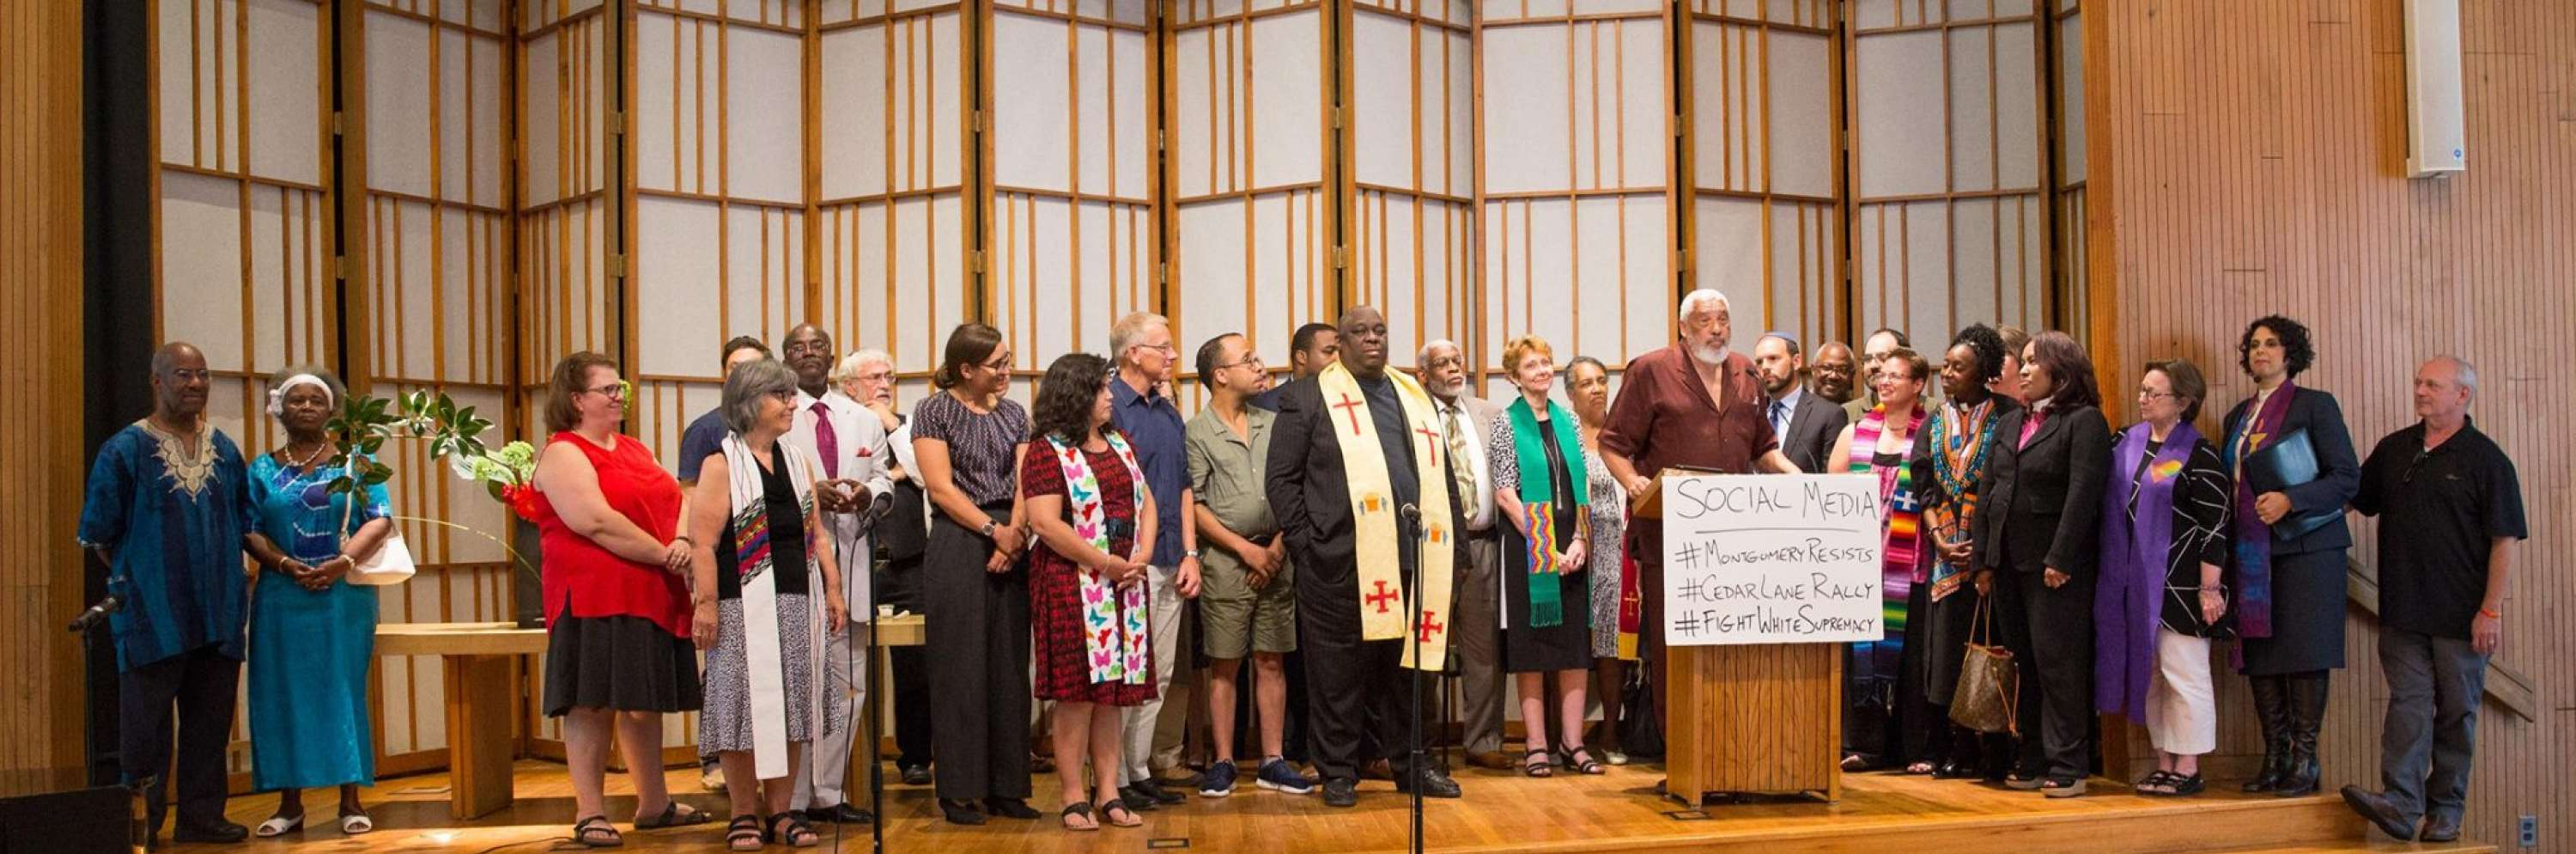 photo of all of the clergy and leaders at the Interfaith Love Over Hate Rally in August 2017